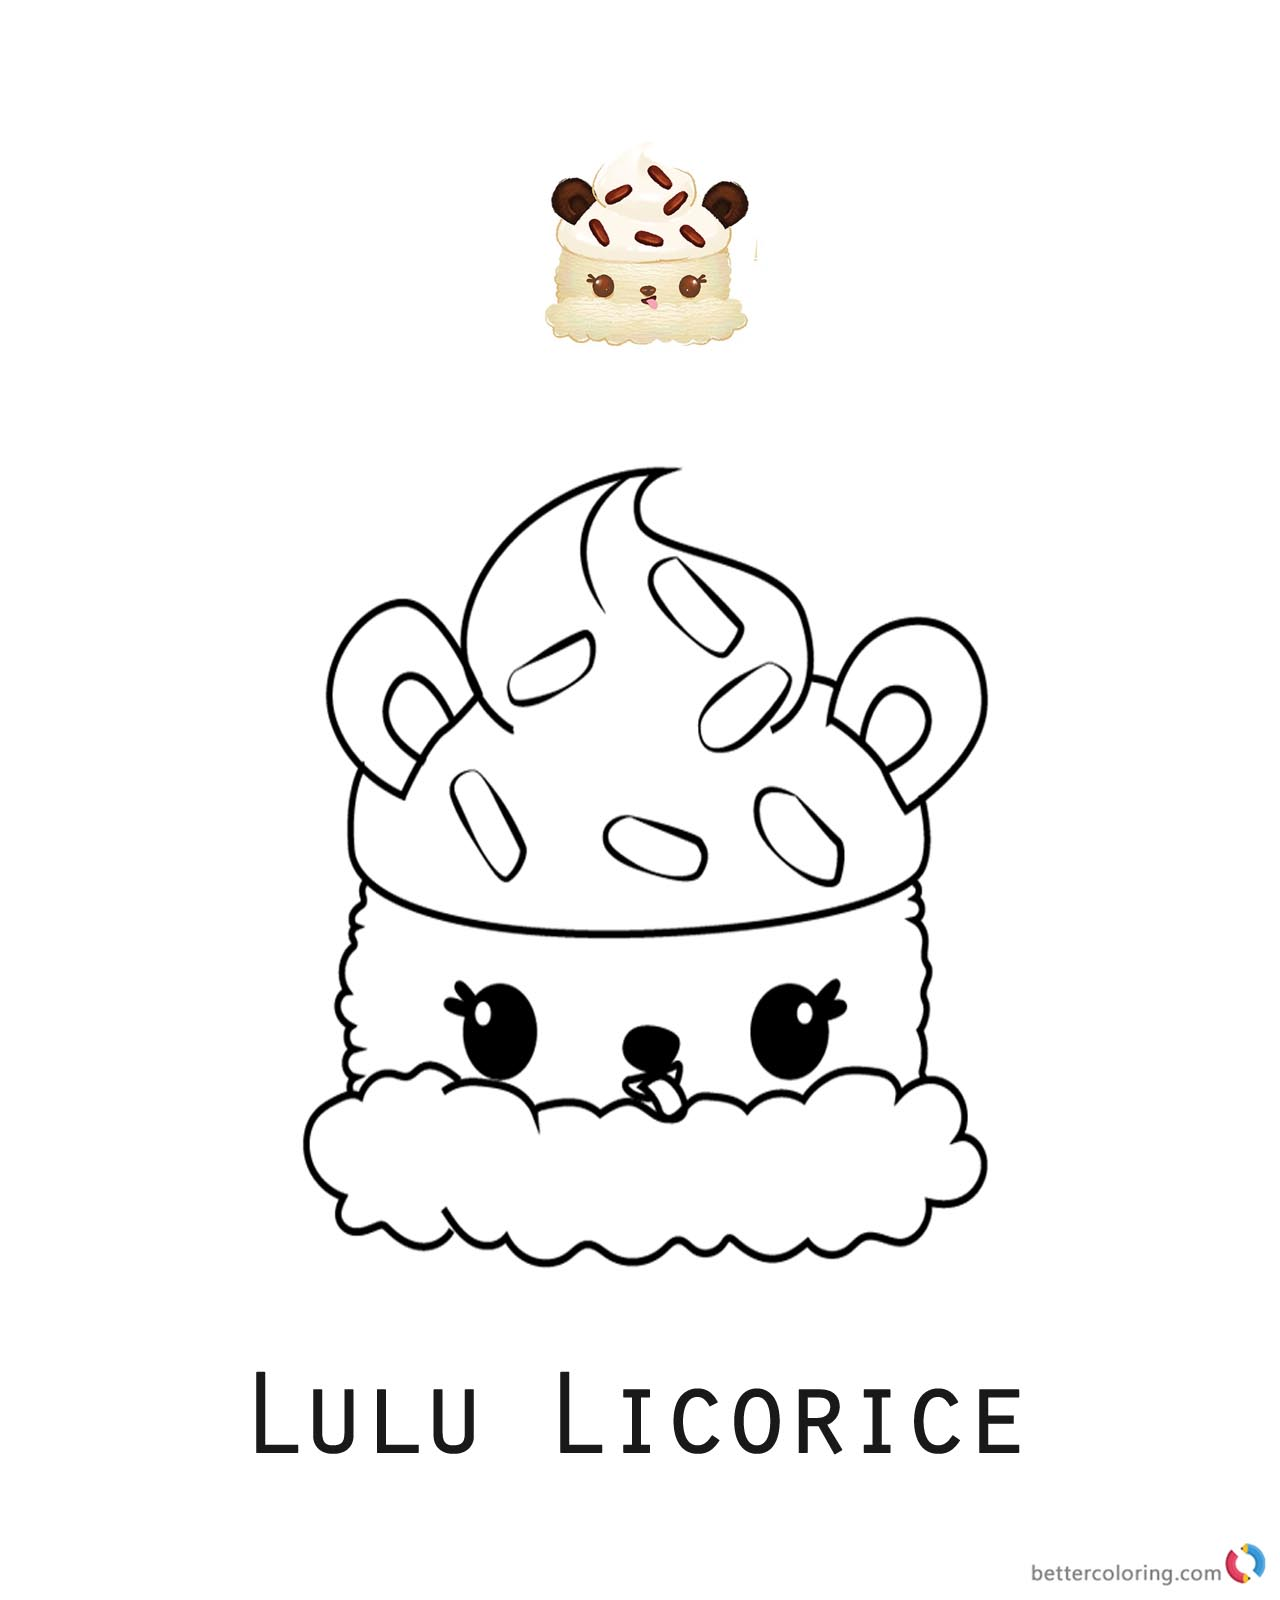 Lulu Licorice from Num Noms coloring pages printable